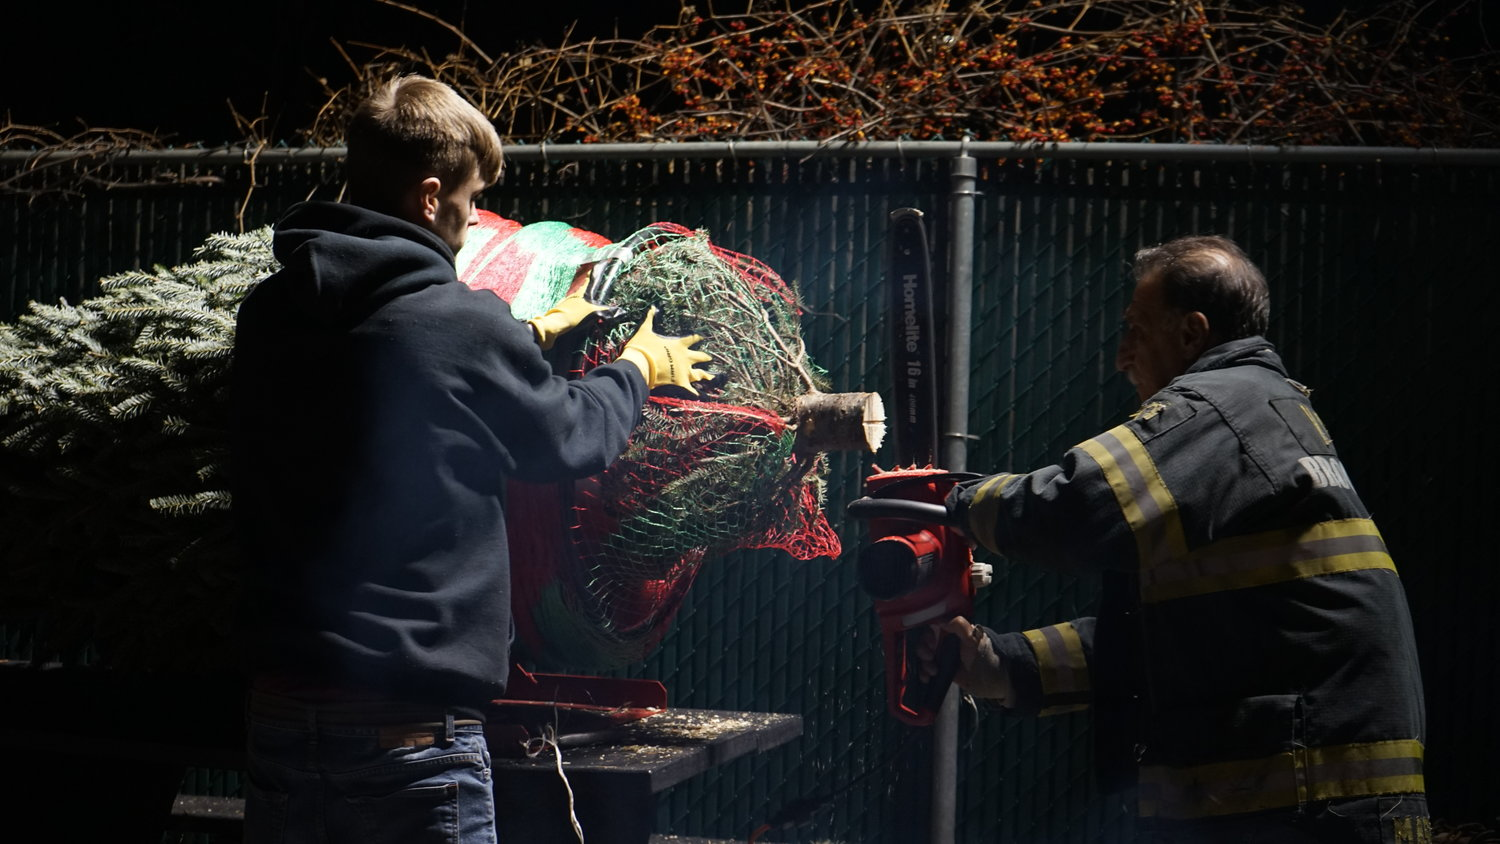 Firefighters Sean McBride, left, and Ronny Mastrangelo readied a tree for sale.